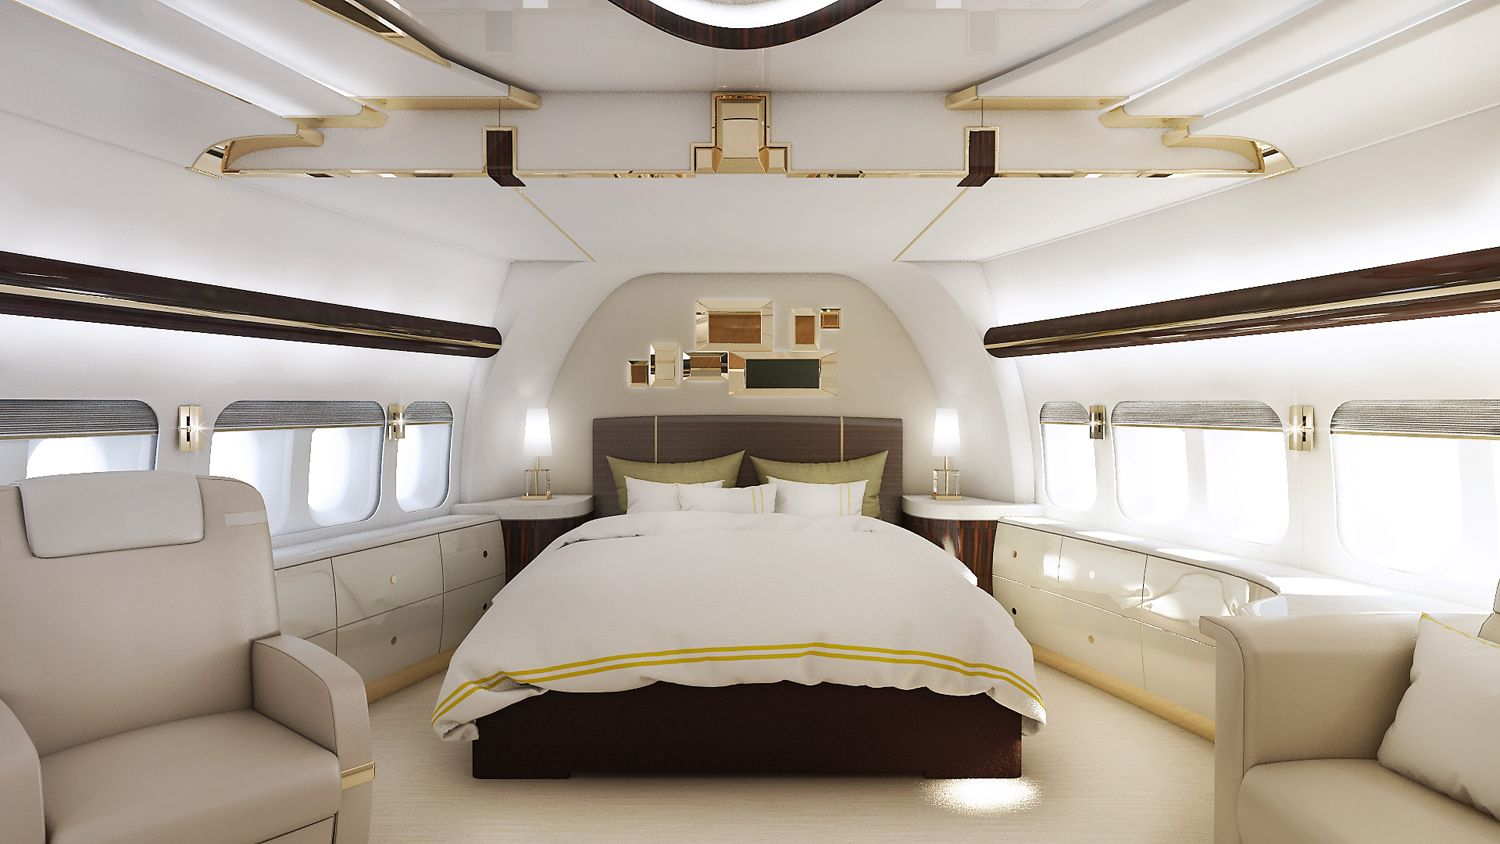 Master suite of a VIP Boeing 747-8 finished by Greenpoint Technologies, of Kirkland, Wash. Photo: Greenpoint Technologies   - PopularMechanics.com